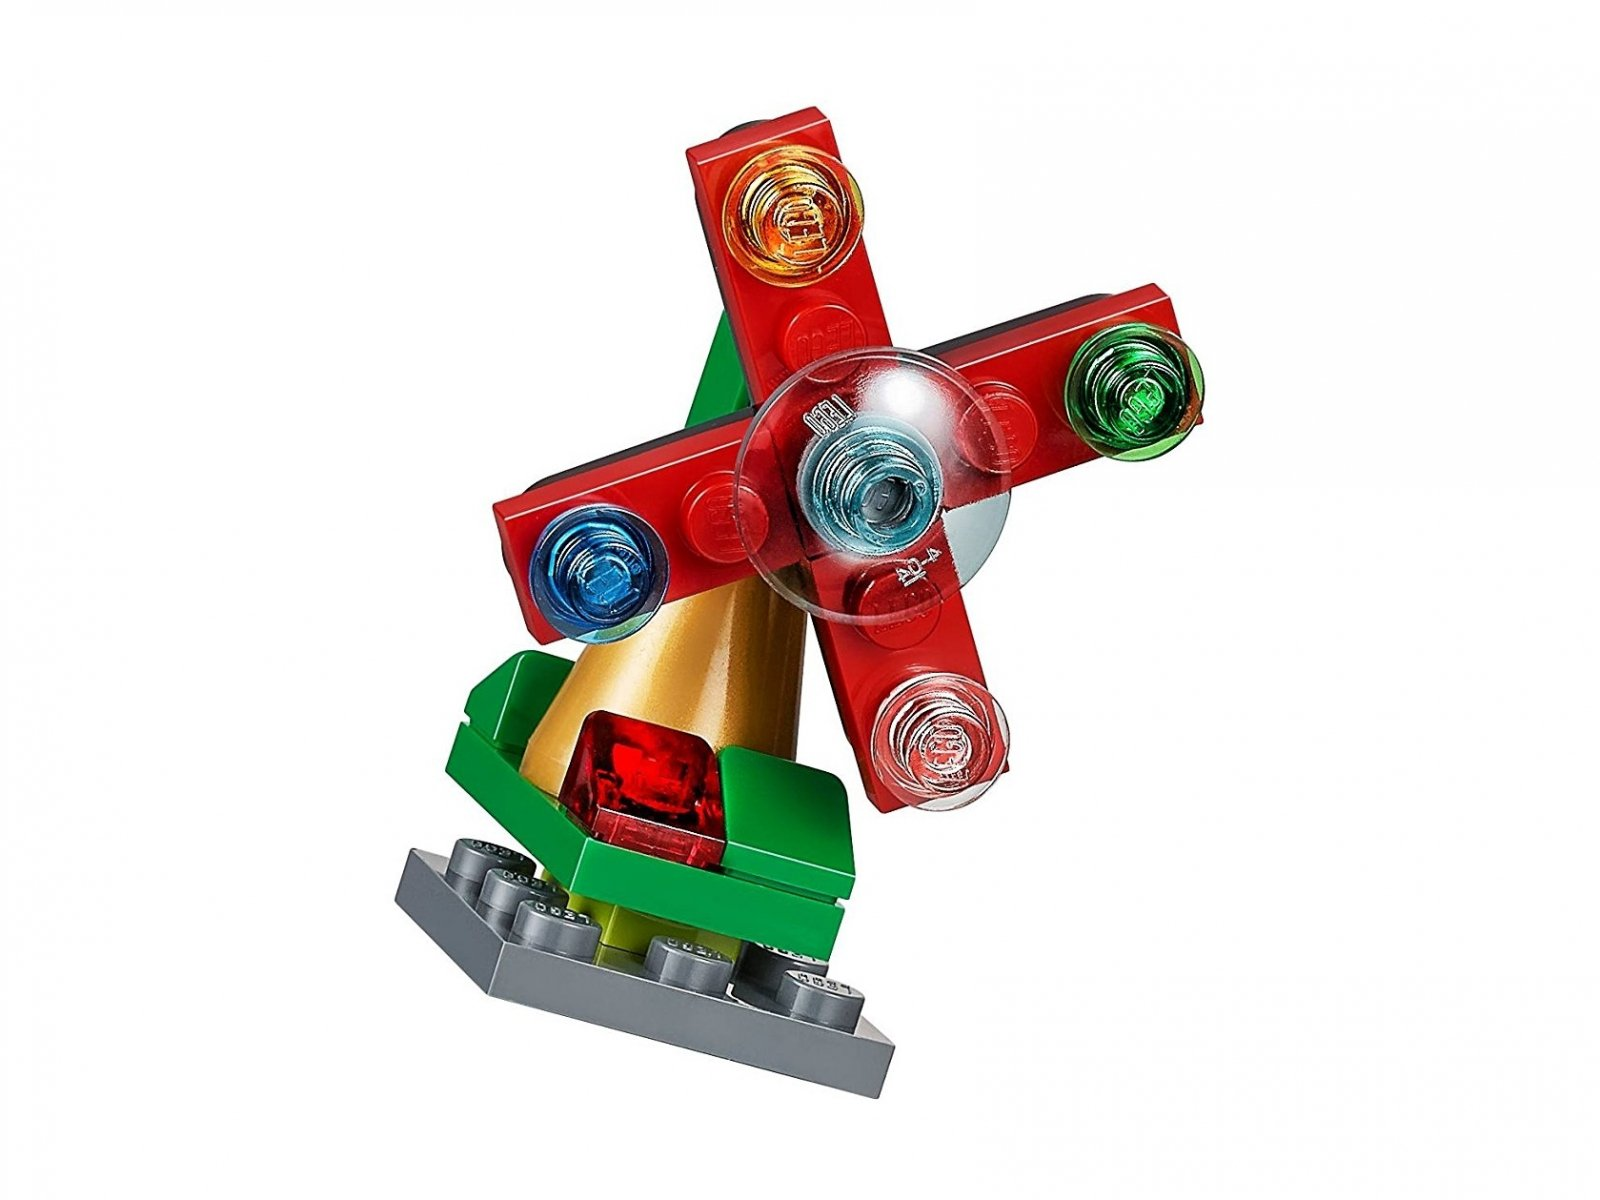 LEGO 5004934 Christmas Ornament